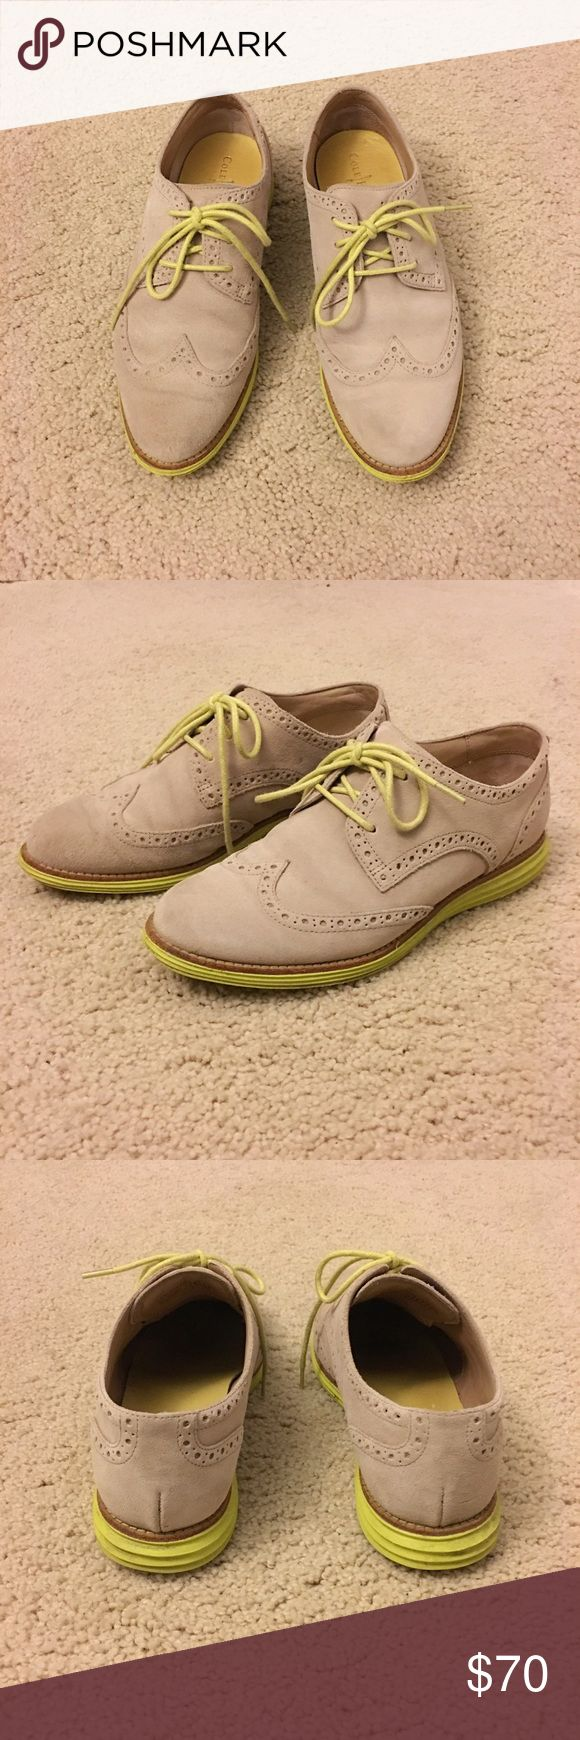 Cole Hann Oxfords Cole Haan Lunar Grand Suede Wingtip Oxfords. Perfect for spring. Use them as the statement piece! Cole Haan Shoes Flats & Loafers